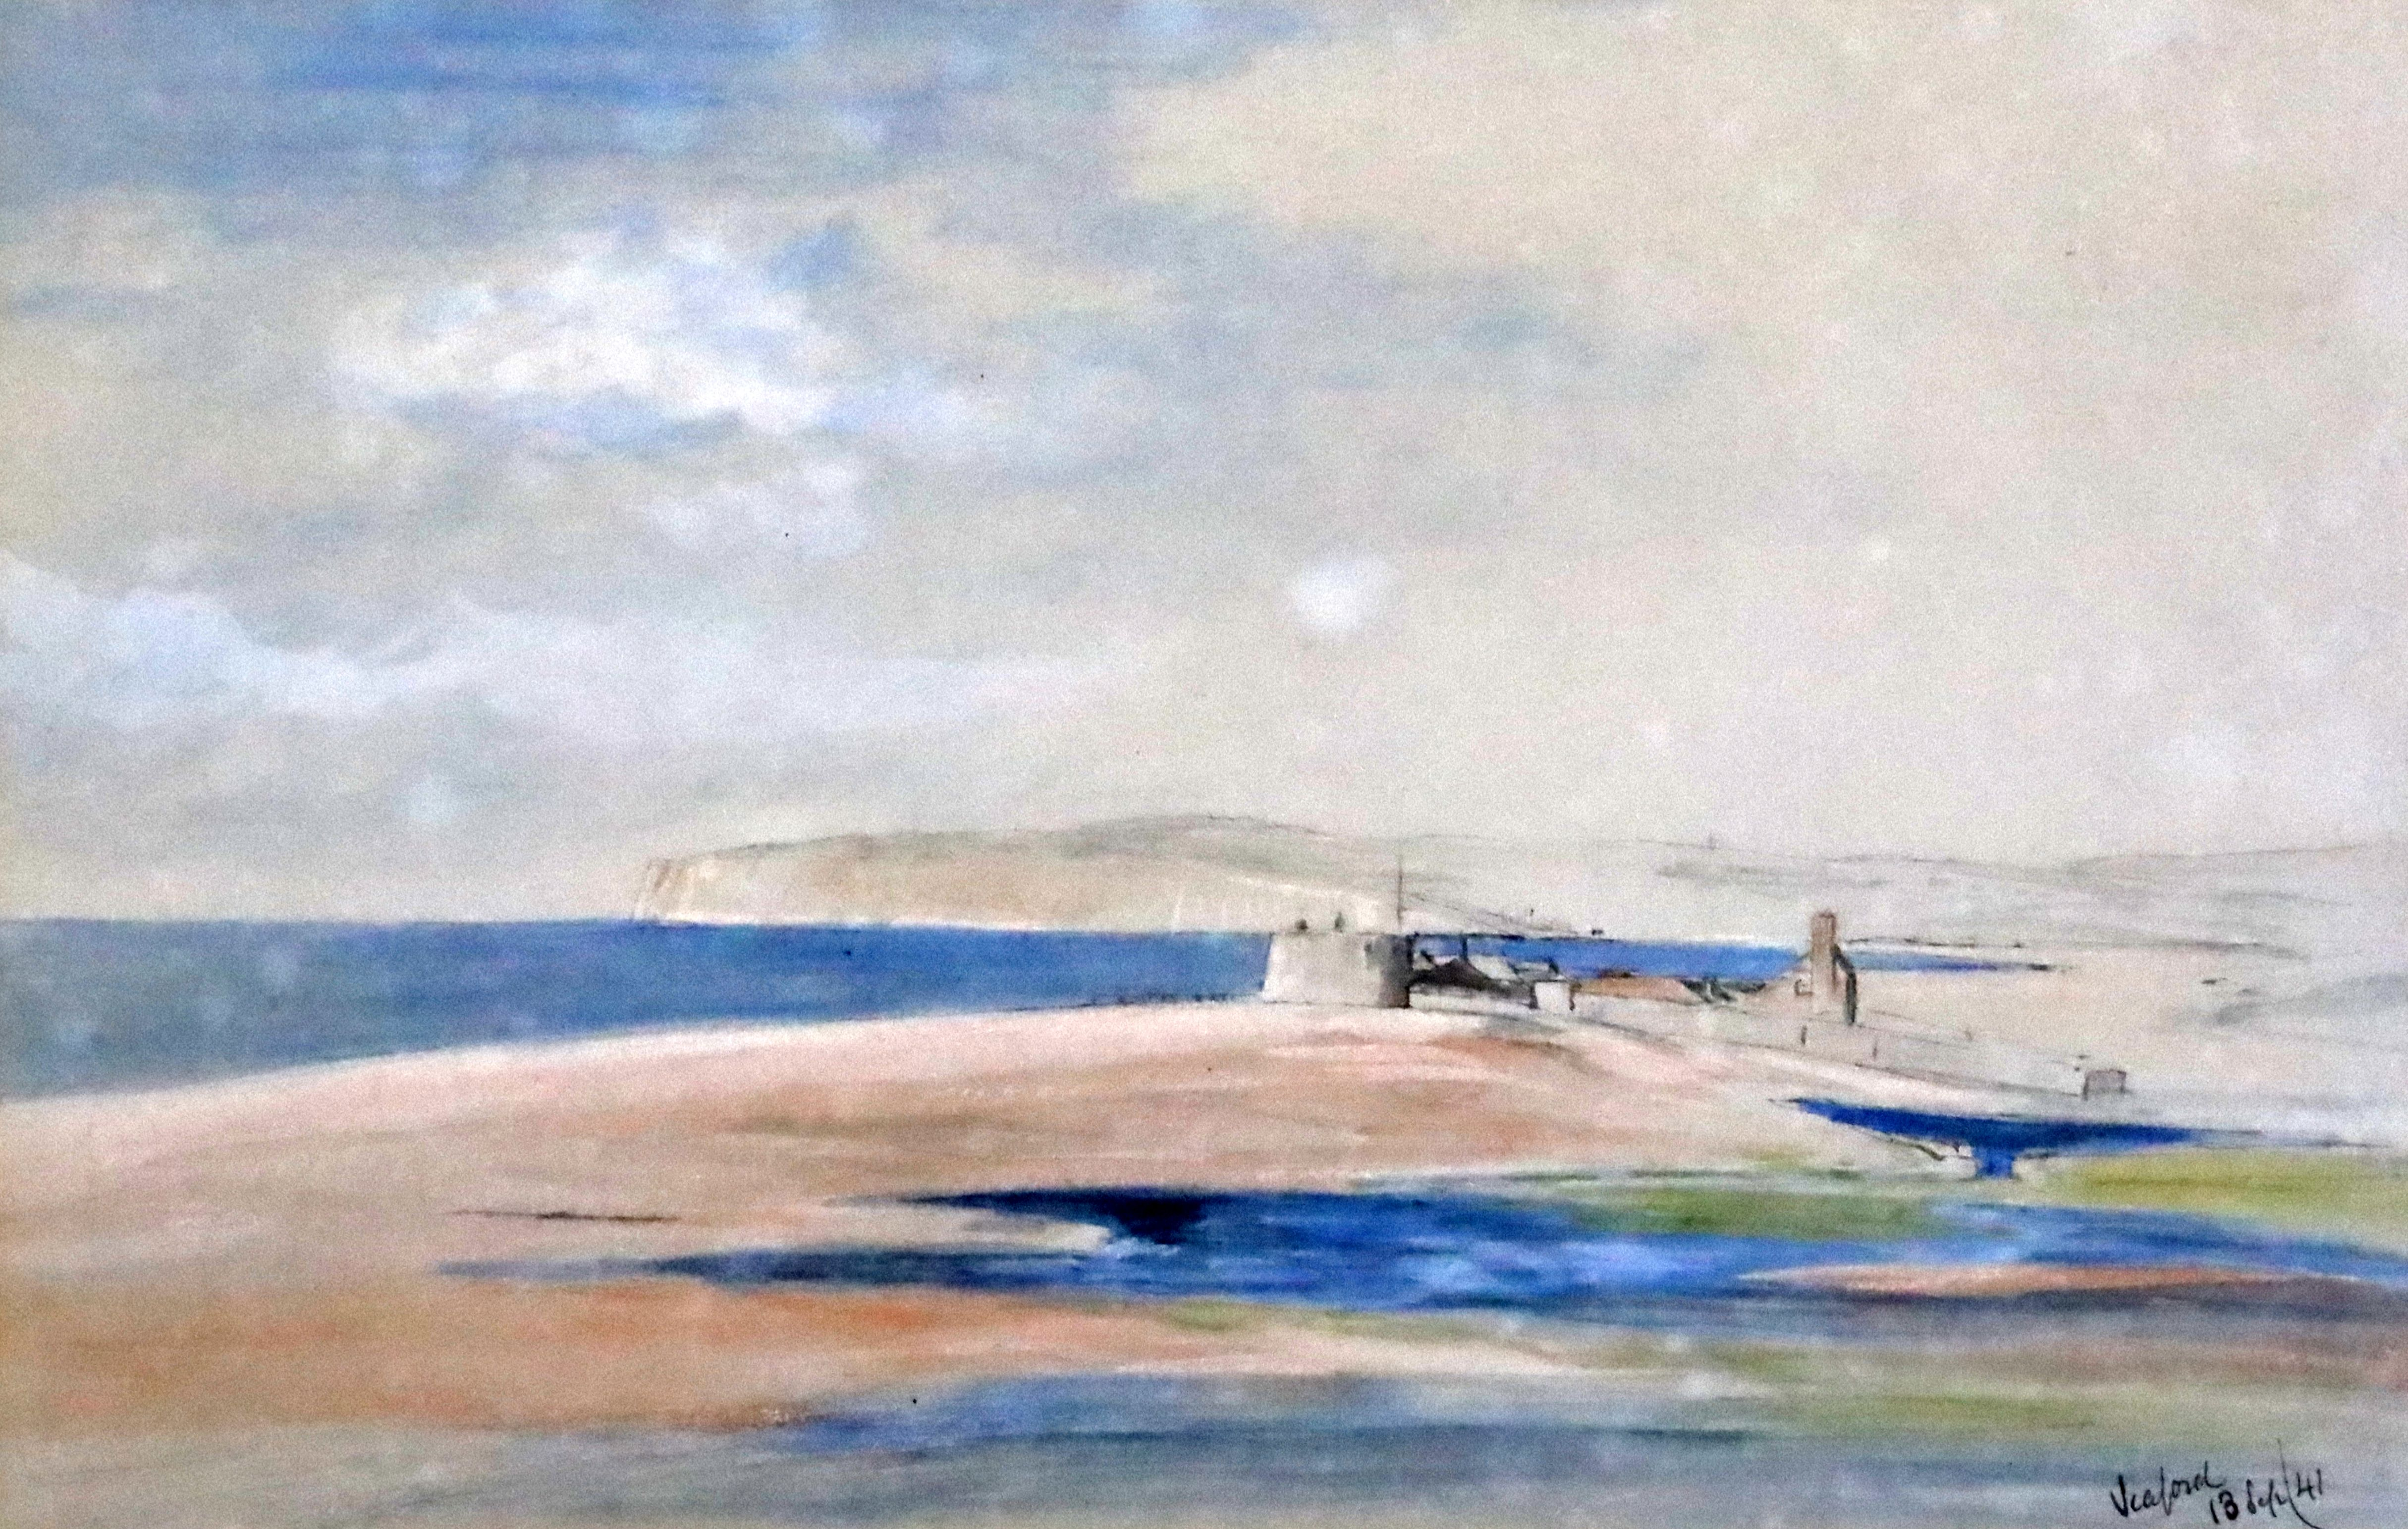 Lot 594 - Edward Lear (1812-1888)pencil, ink and watercolour Seaford, looking towards Newhaven